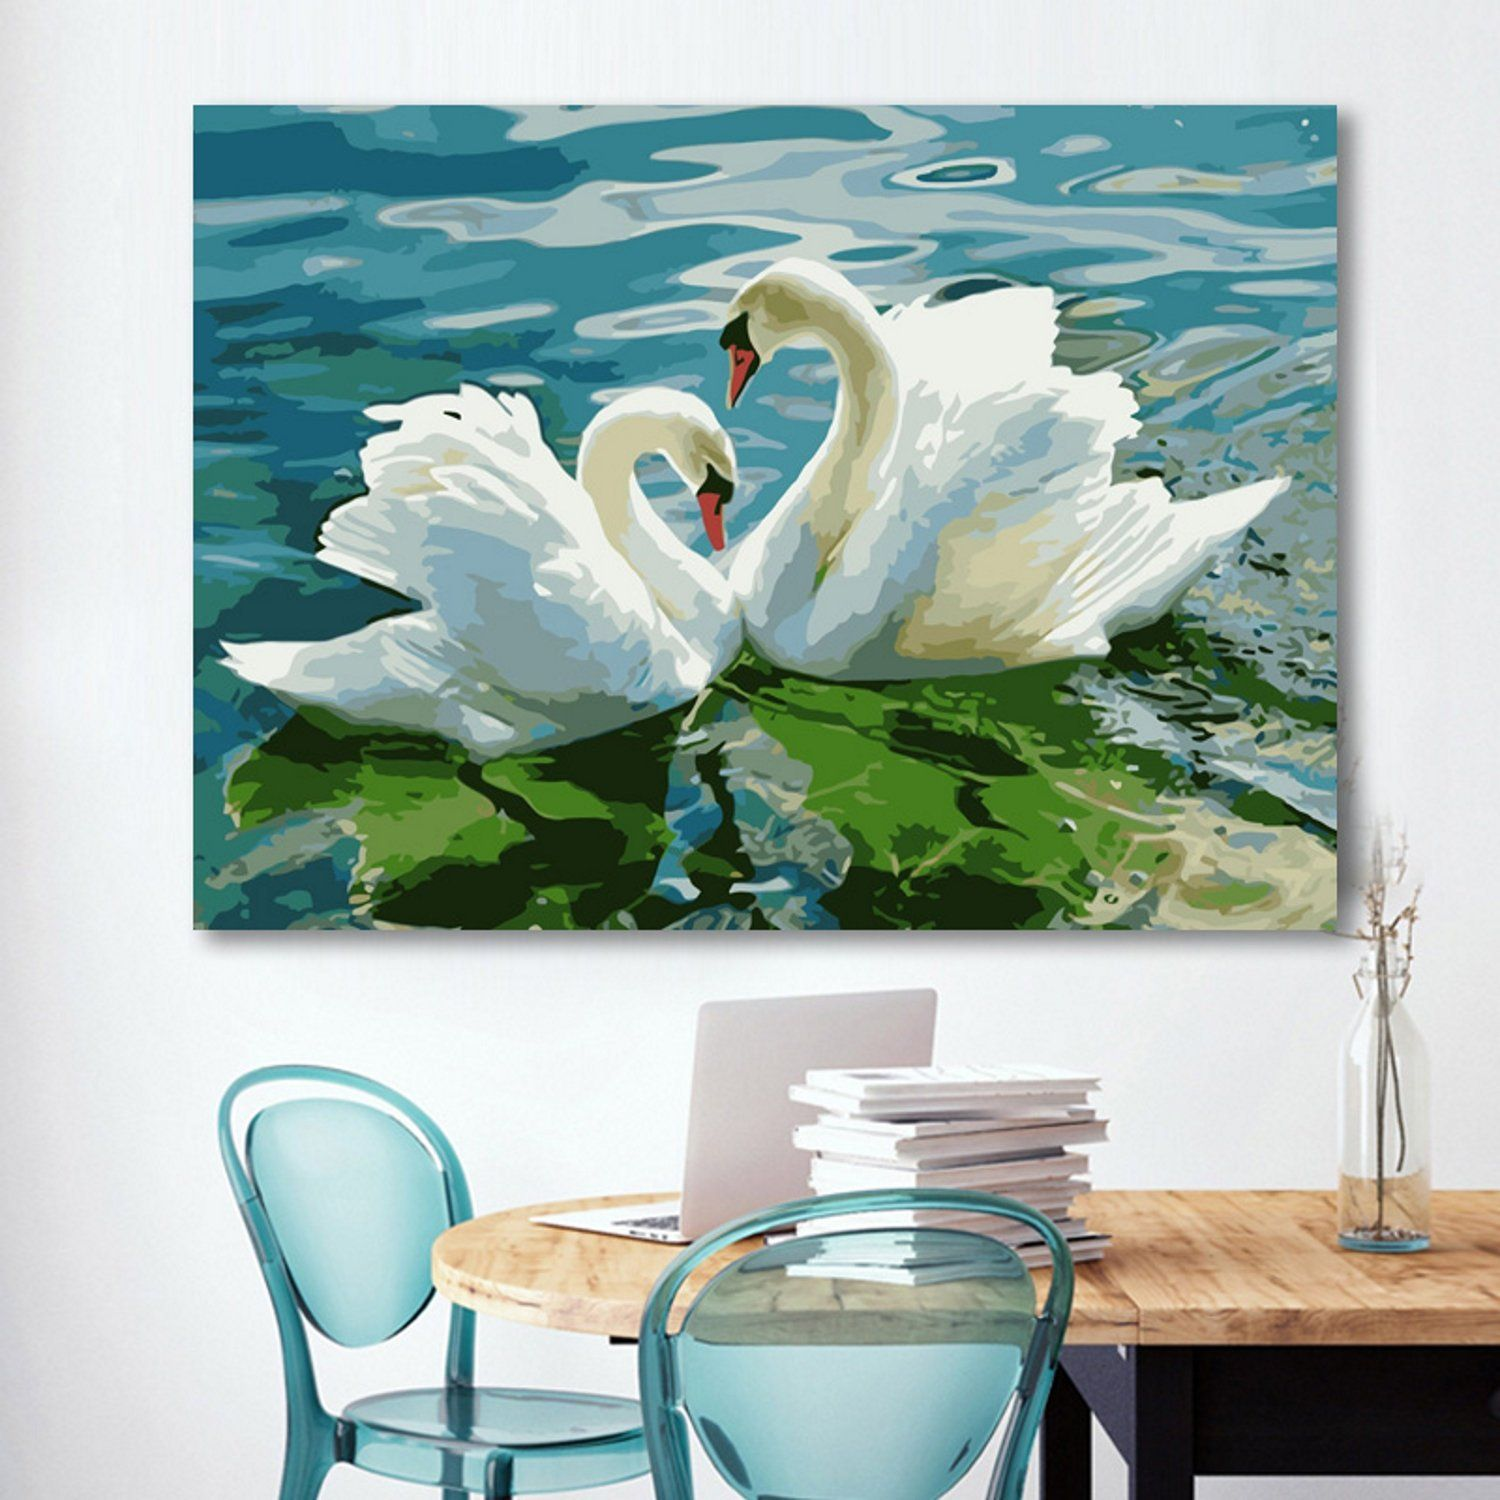 DIY Hand-painted Oil Painting By Numbers Wall Art Unframed Home Decor Diy Oil Paint by Number Kit Christmas Decor Decorations Gifts